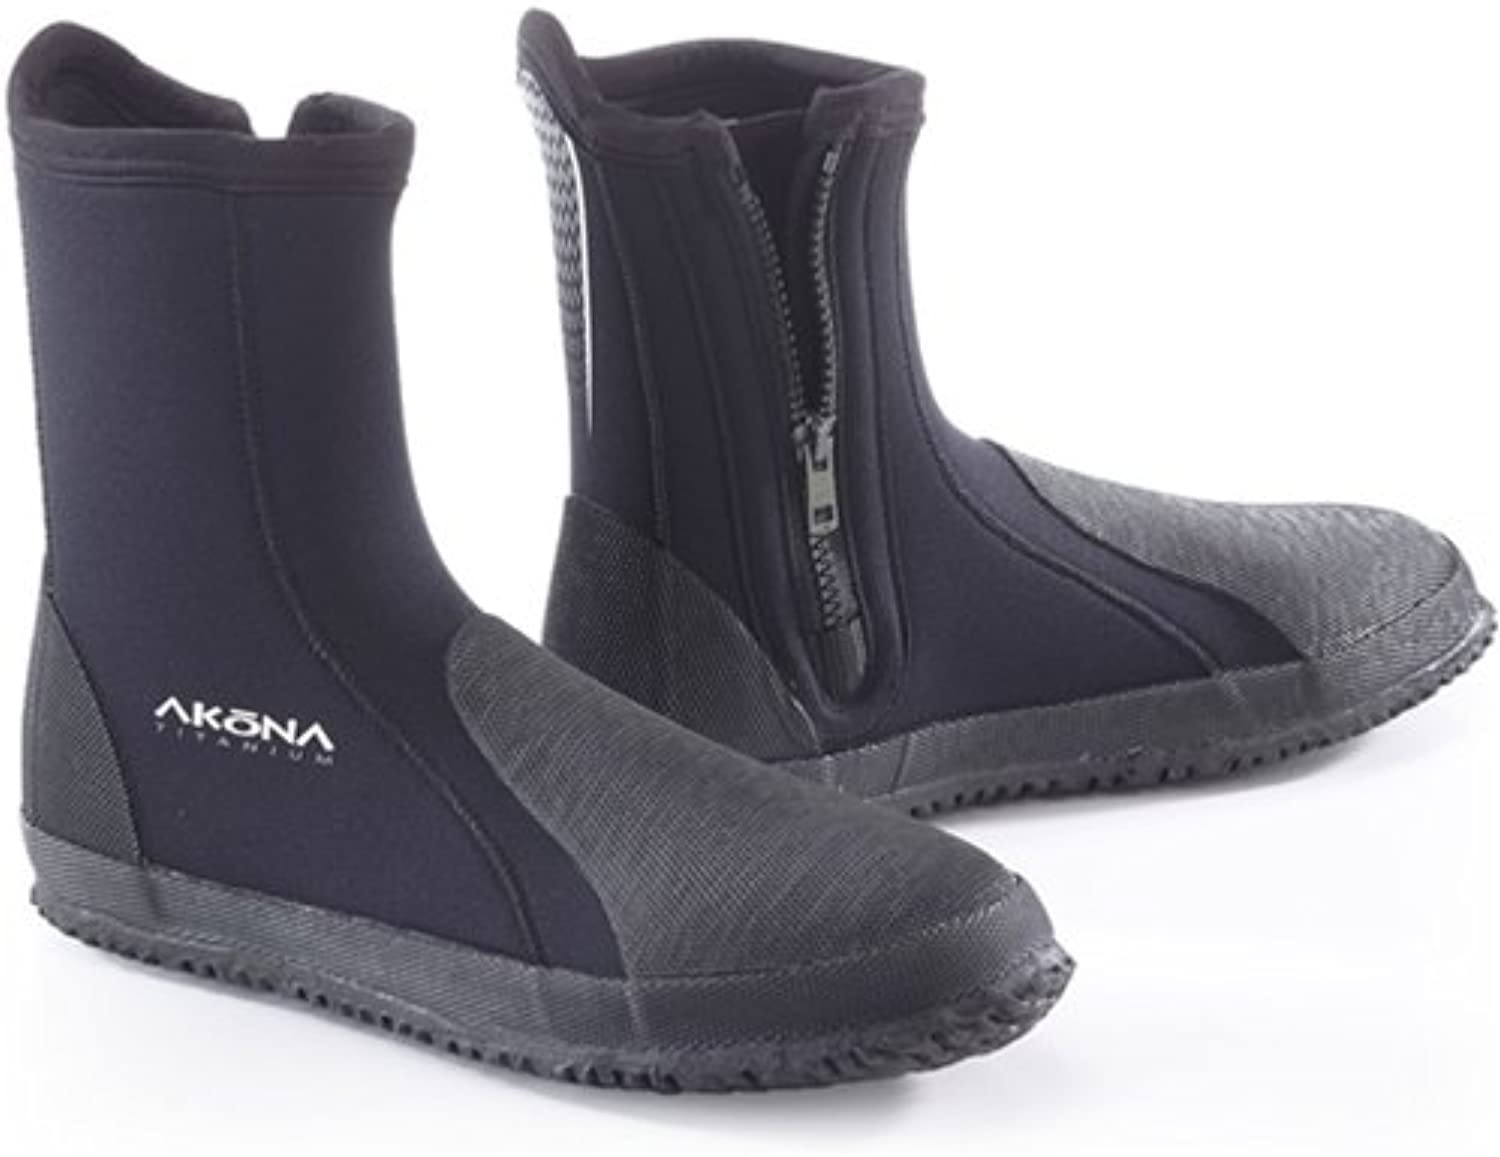 Akona 3.5mm Scuba Deluxe Dive Boot  Size 6 (AKBT23106)